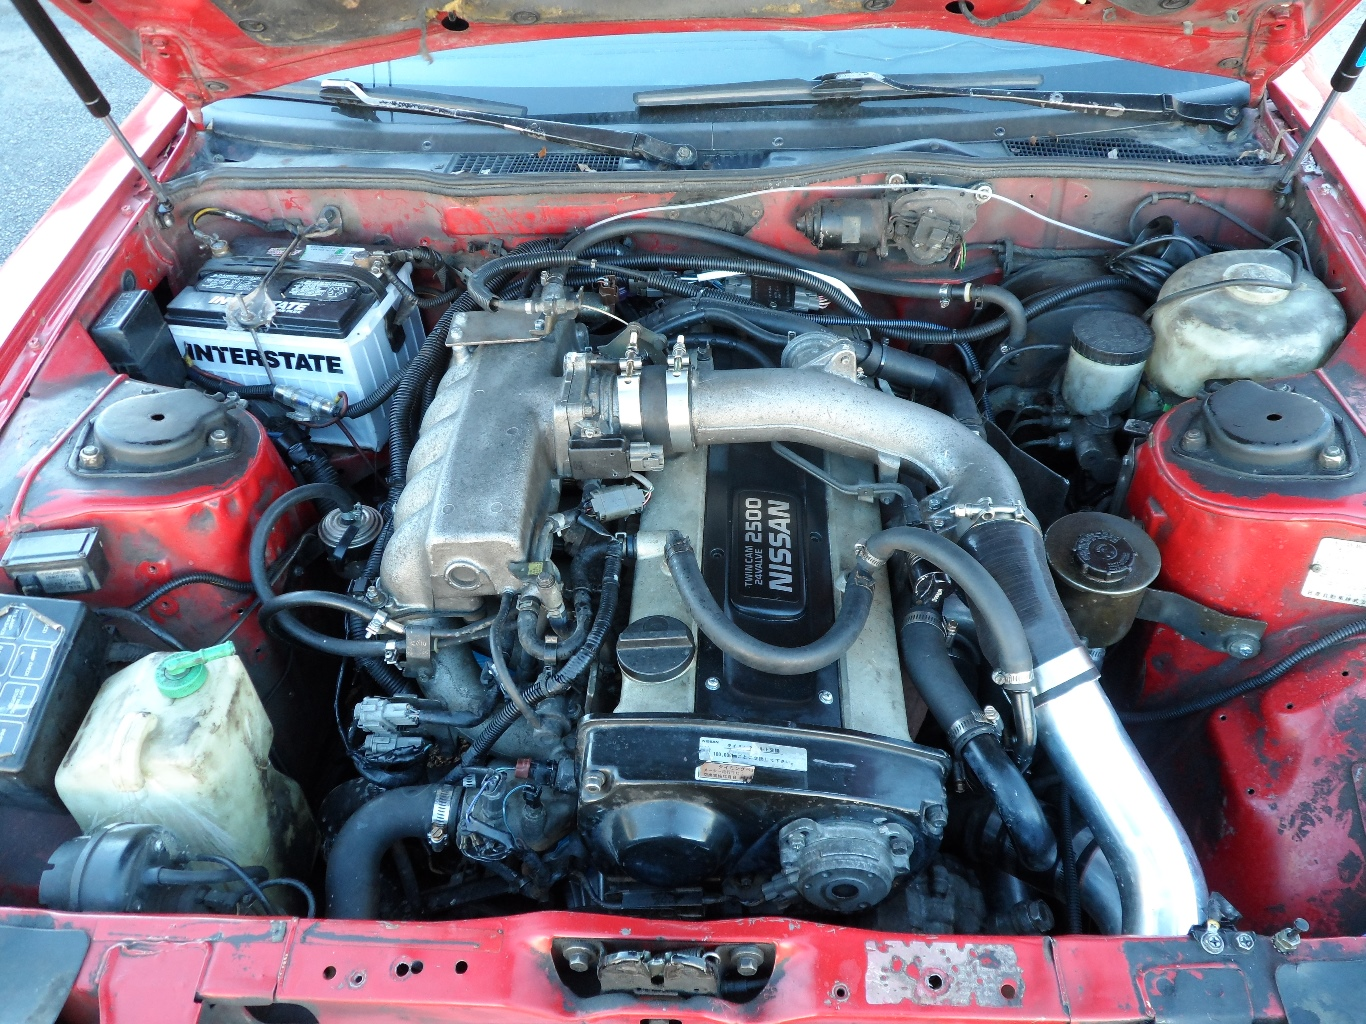 1988 Nissan 300zx Turbo Rb25det Engine Swap Whitehead